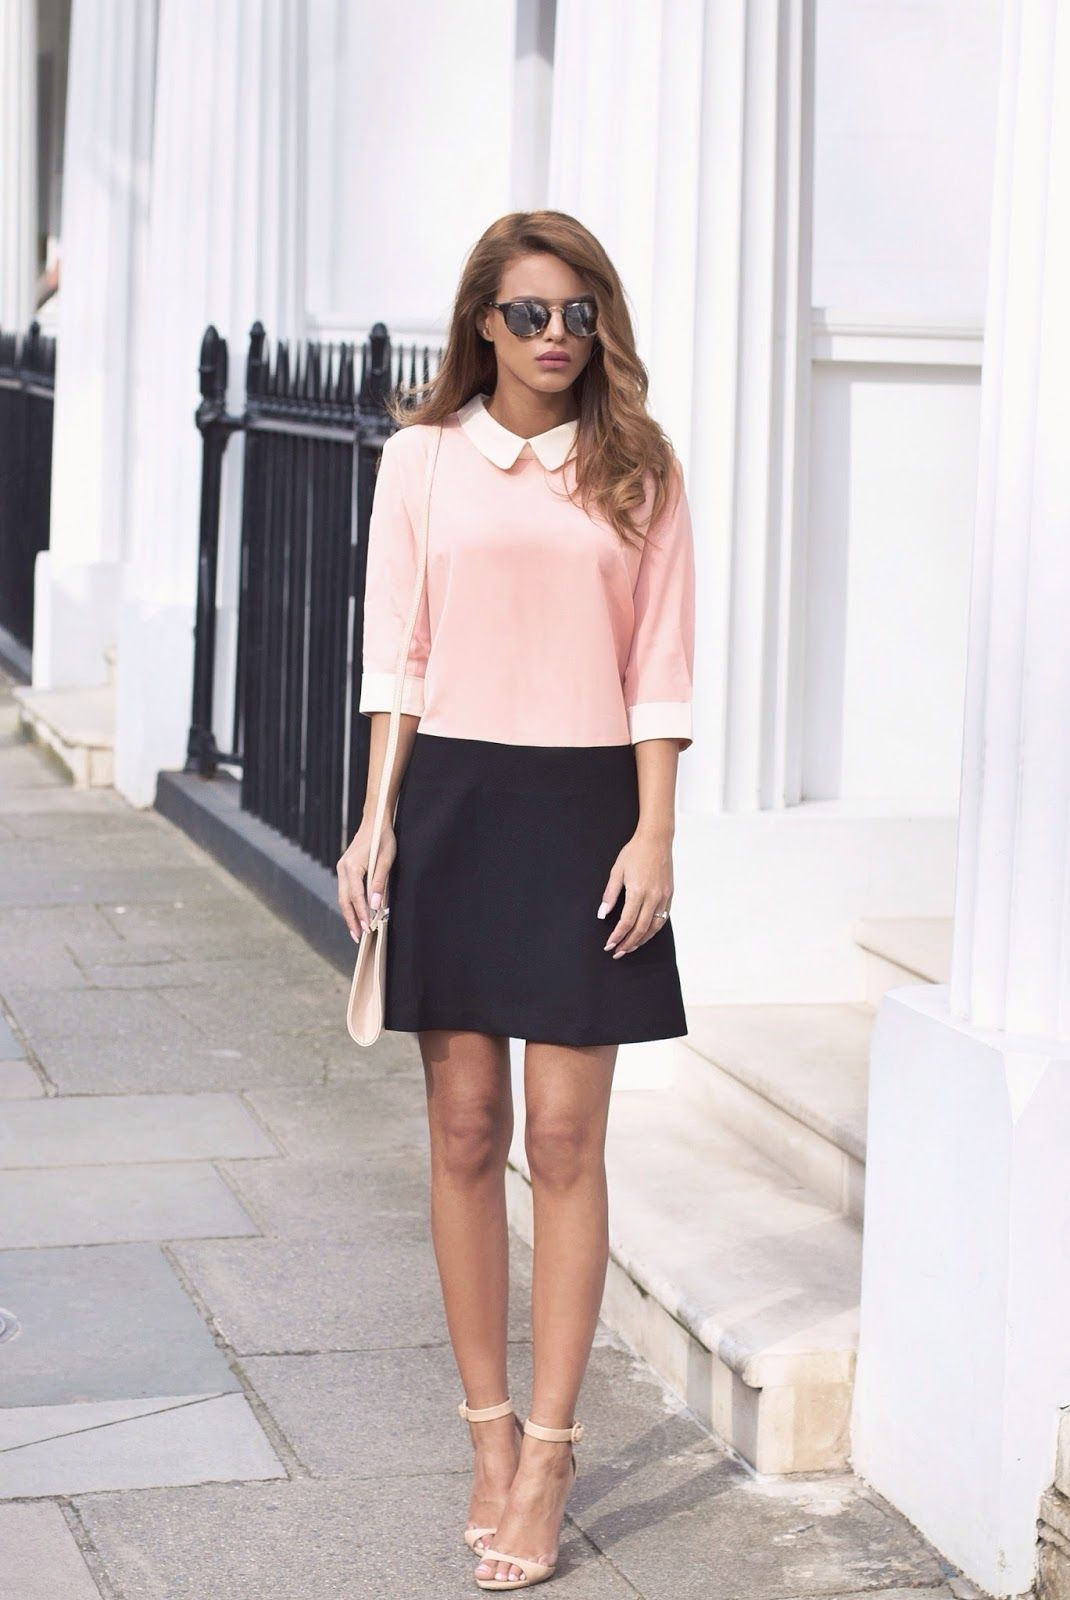 Nada Adelle is showing off the blush pink fashion trend with a Lia blush  pink and black collared dress 40490cce9